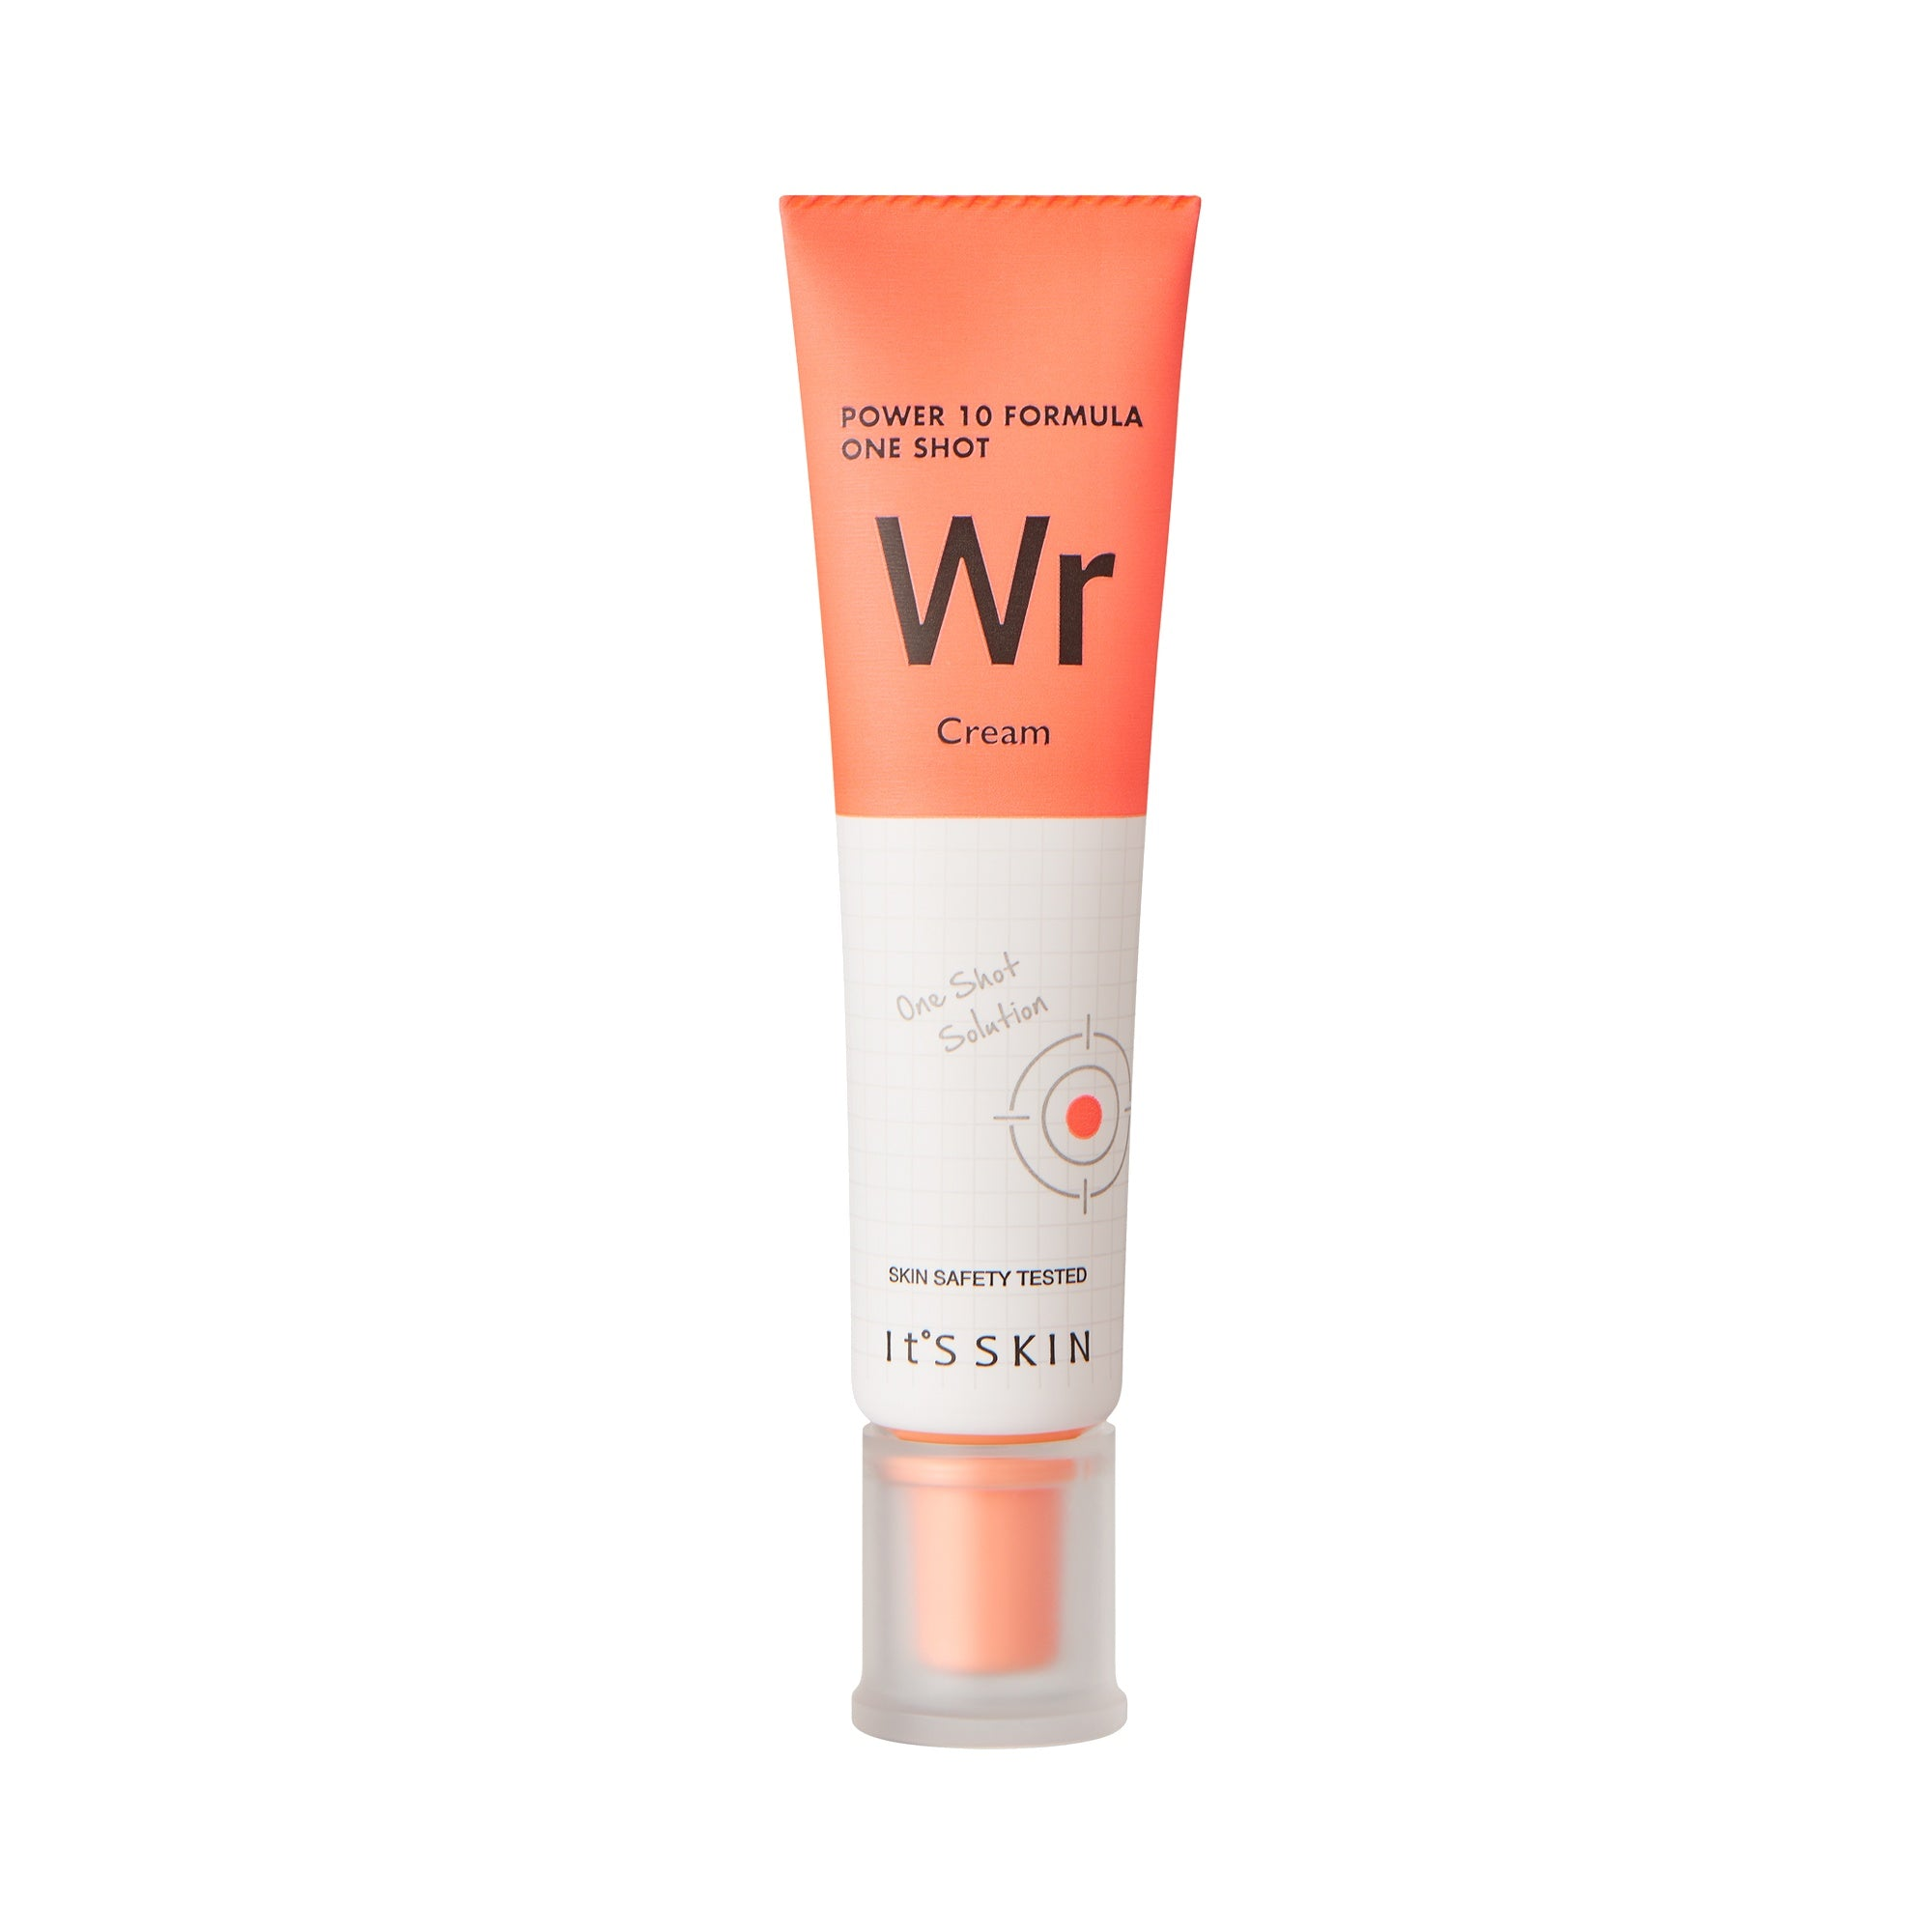 Health & Beauty > Personal Care > Cosmetics > Skin Care > Lotion & Moisturizer - Power 10 Formula One Shot WR Cream Krem Do Twarzy 35 Ml